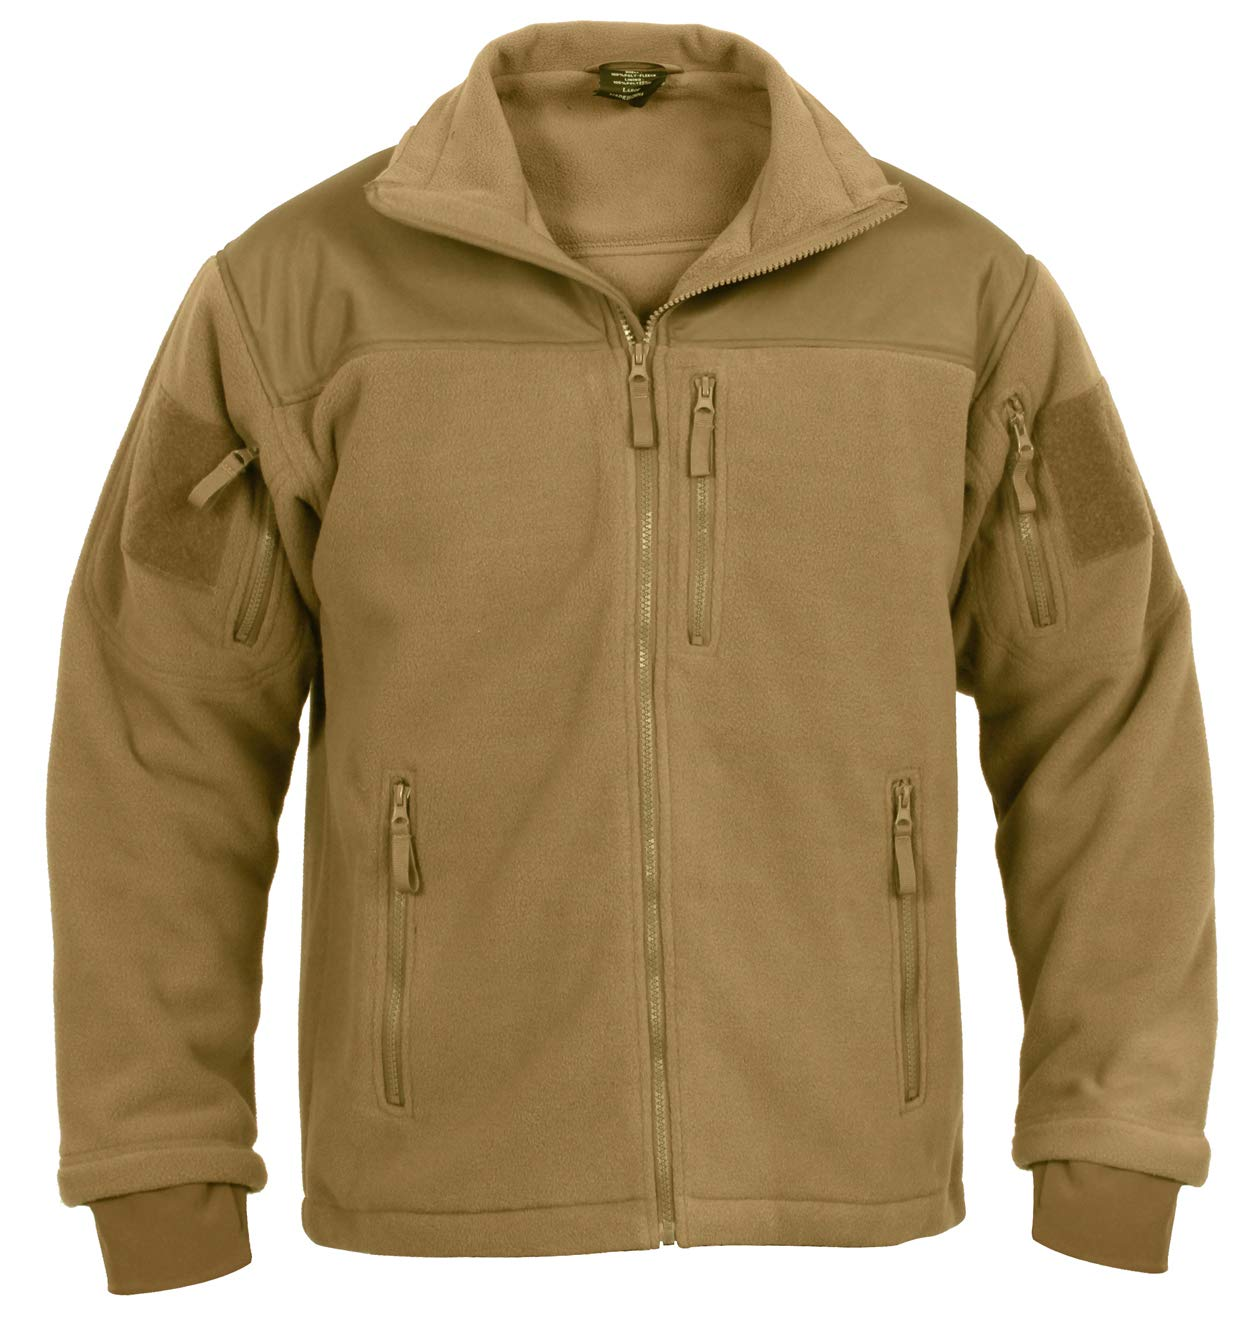 Rothco Spec Ops Tactical Fleece Jacket Sports Outdoors Jaket Army Gear Import Tad